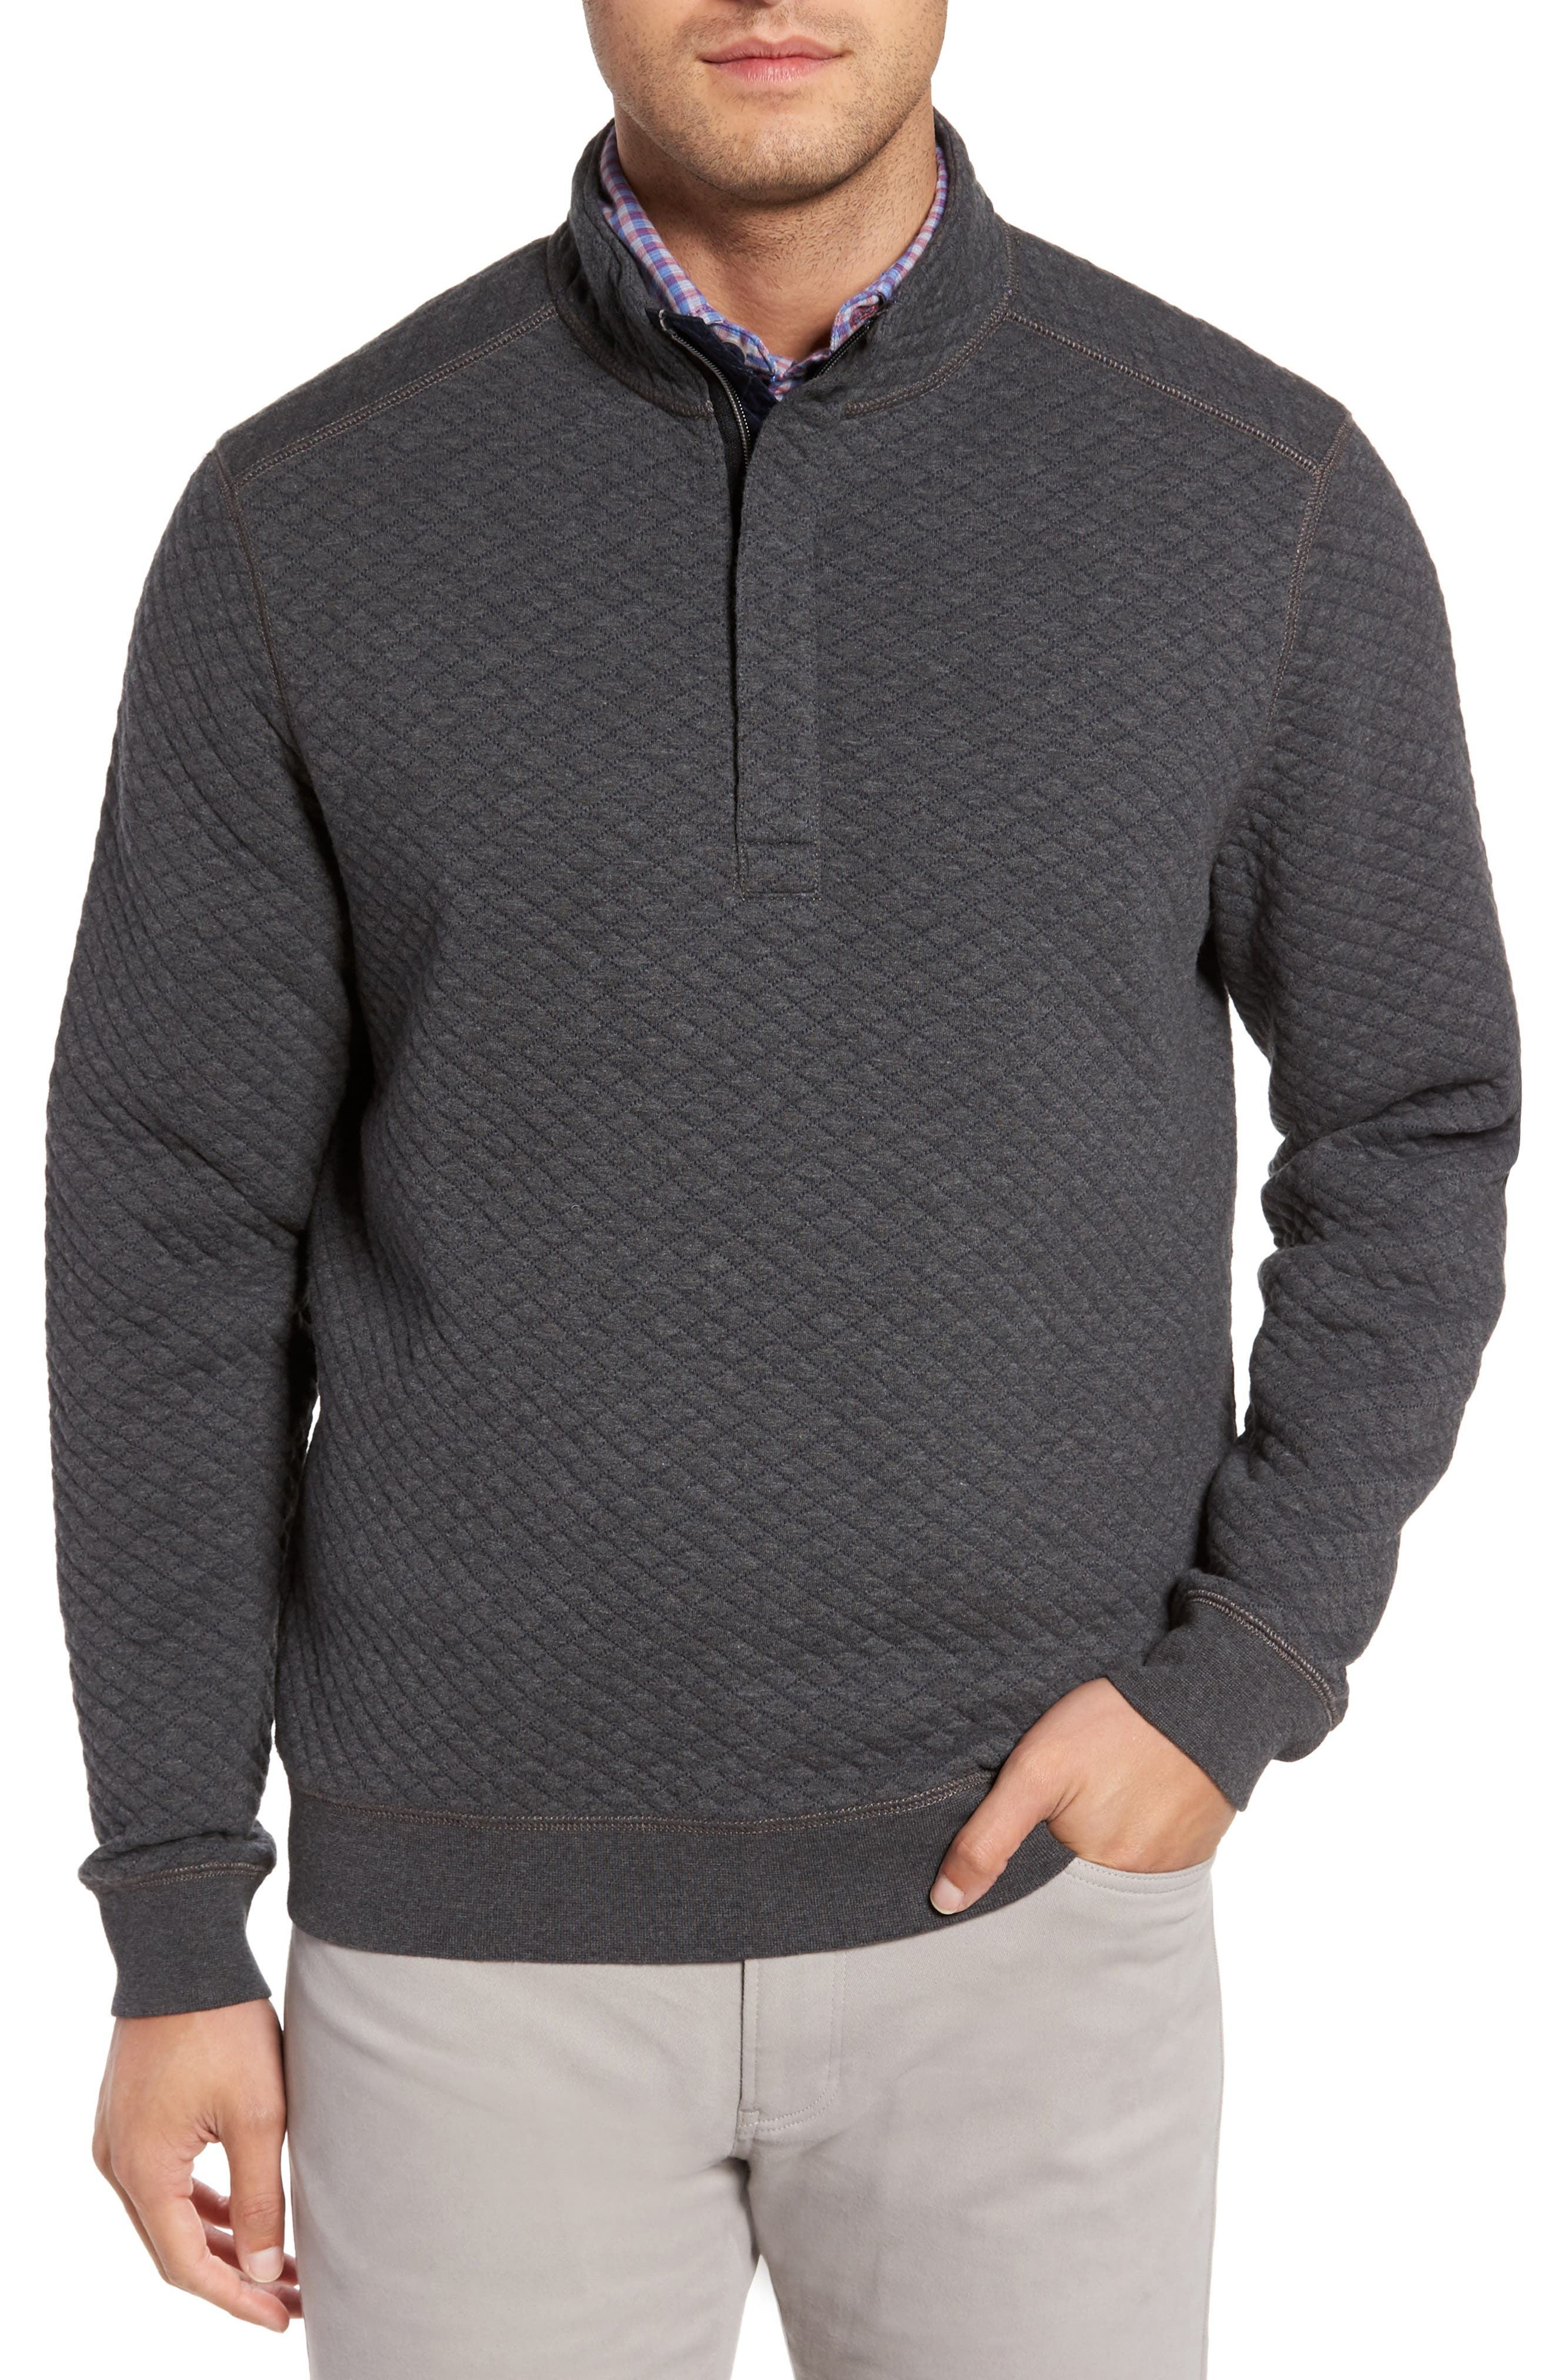 Quiltessential Standard Fit Quarter Zip Pullover,                             Main thumbnail 1, color,                             Charcoal Heather